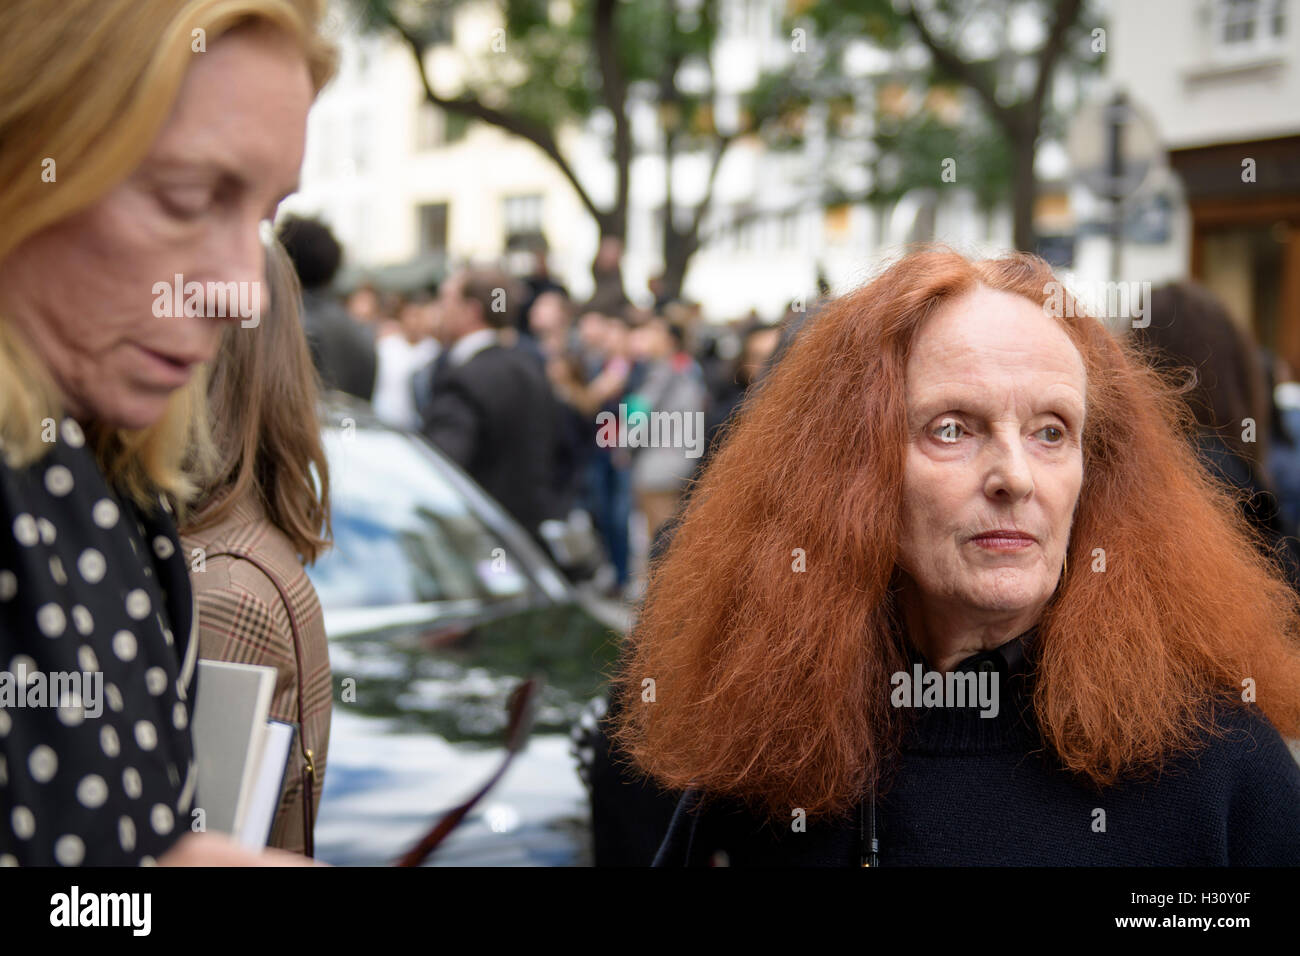 Paris, France. 2nd Oct, 2016. Former model and the creative director at large of American Vogue magazine Grace Coddington - Stock Image